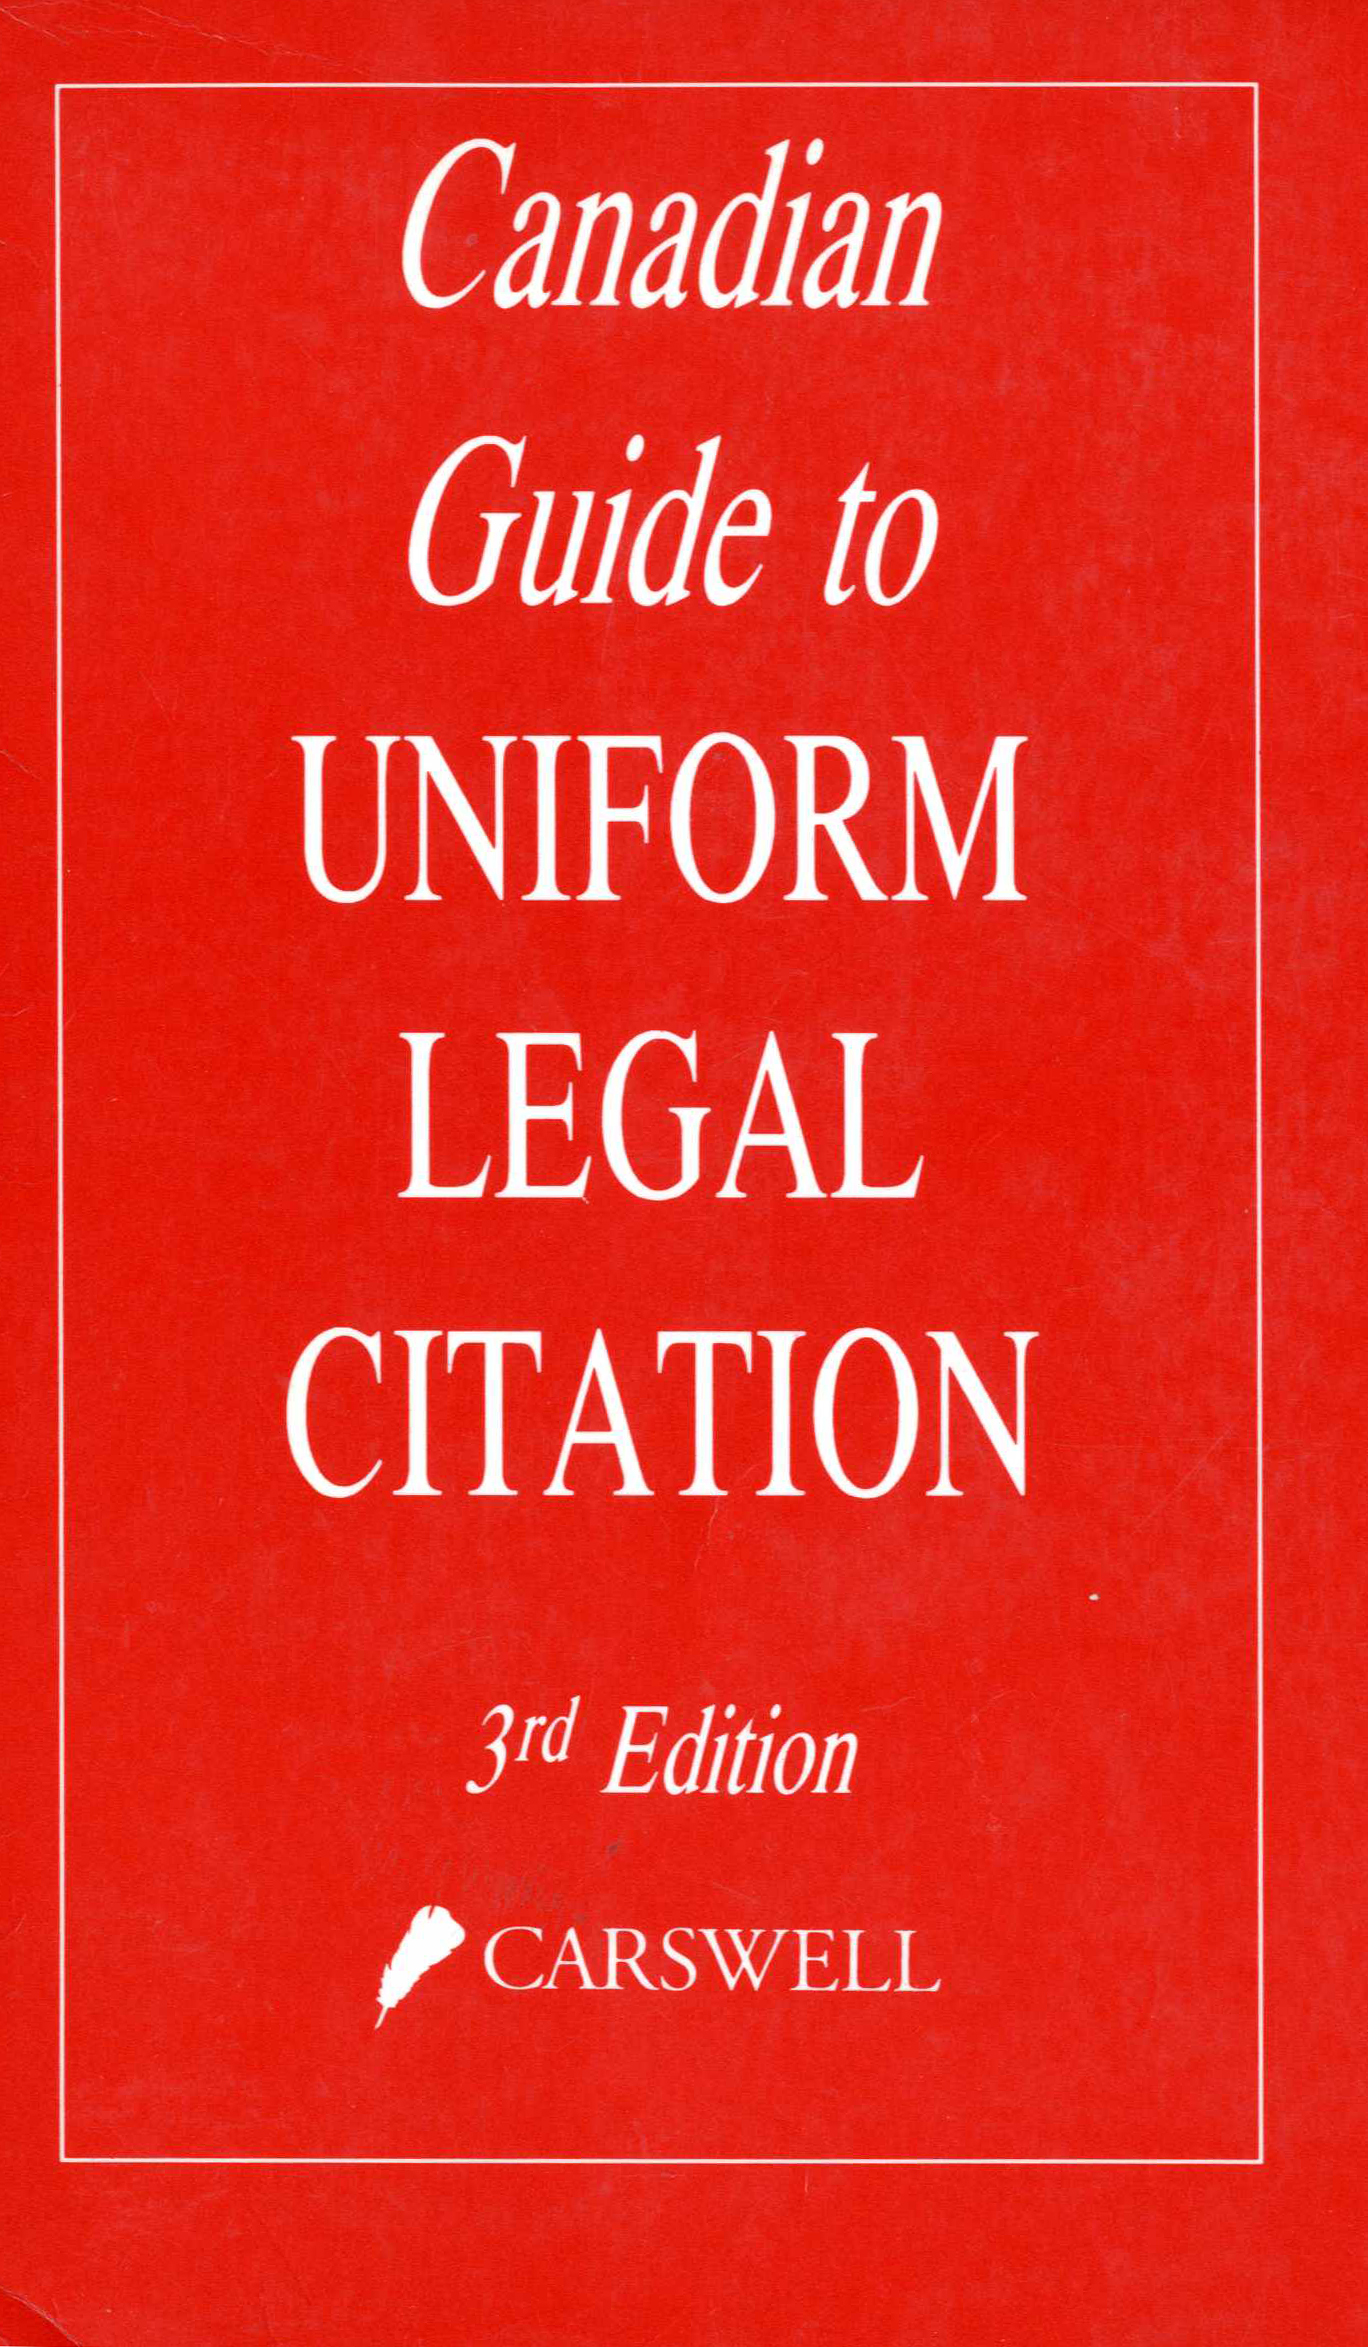 Canadian Guide to Uniform Legal Citation 3rd Edition Image